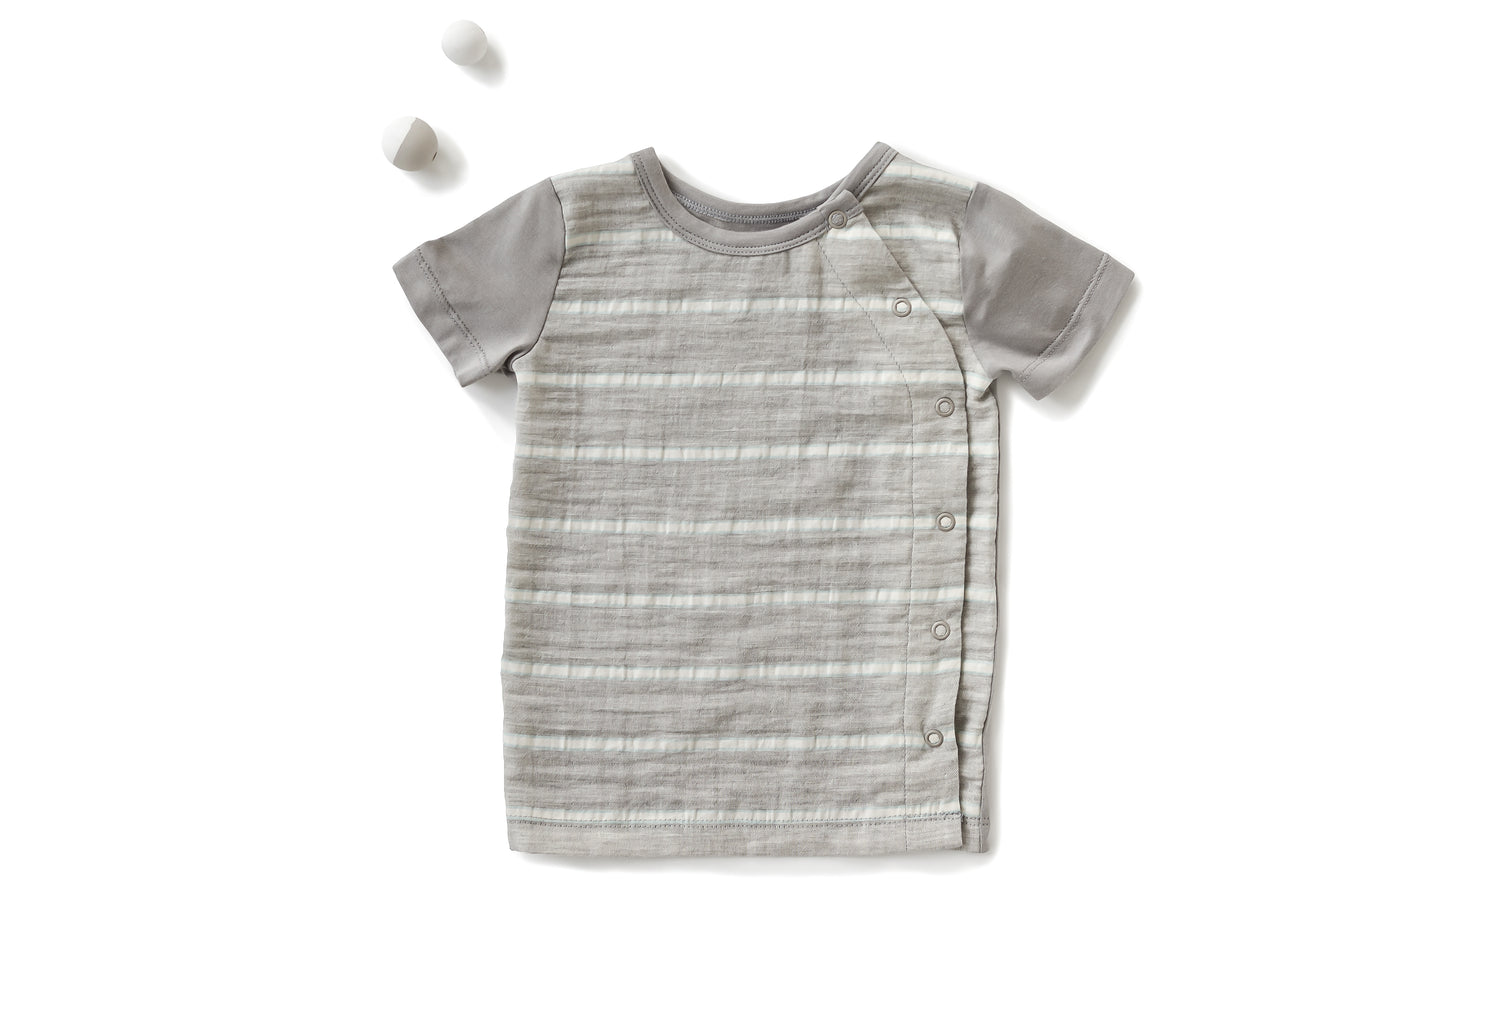 Organic Infant Boy's Short Sleeve Lounge / Pajama Shirt | Gray